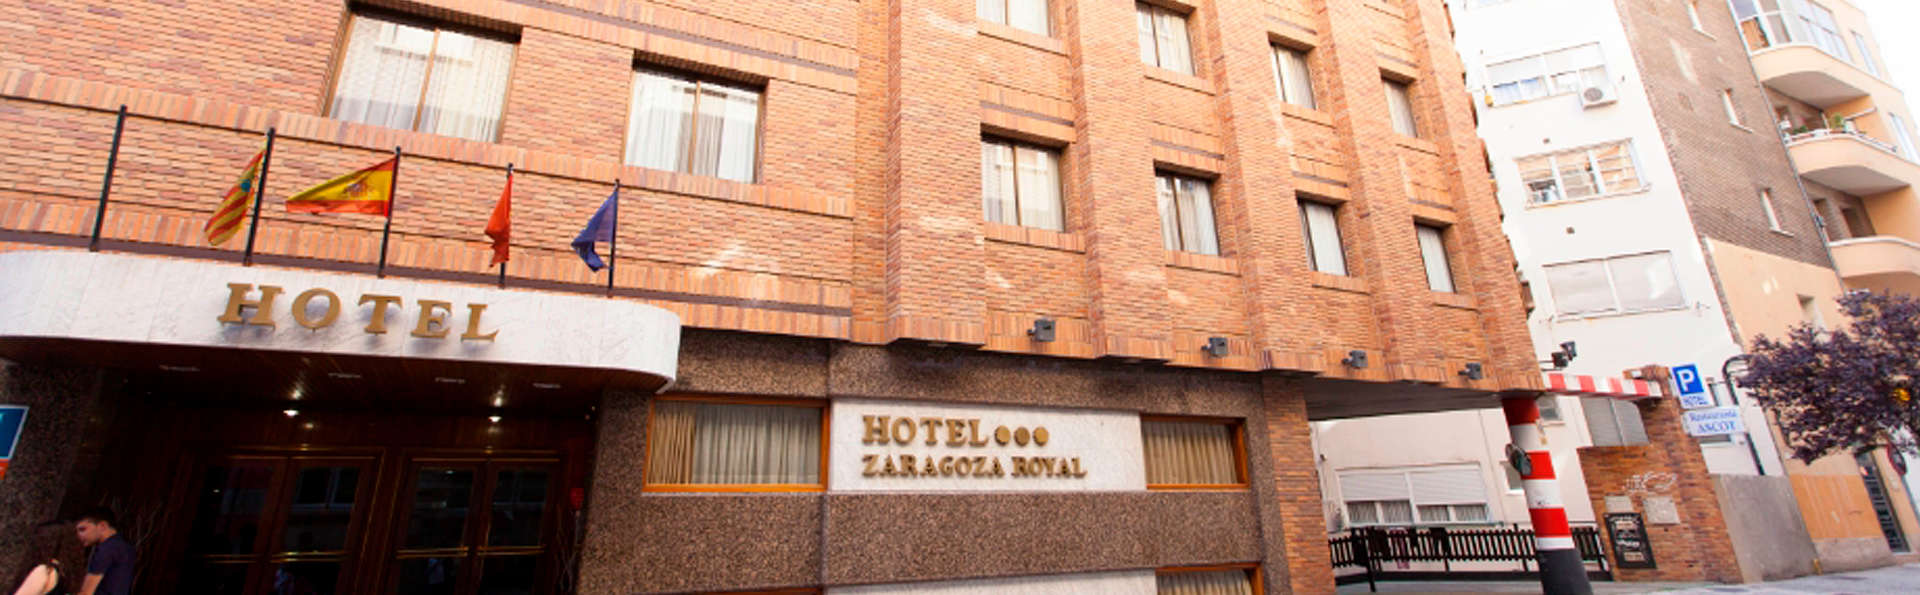 Hotel Zaragoza Royal - edit_front.jpg